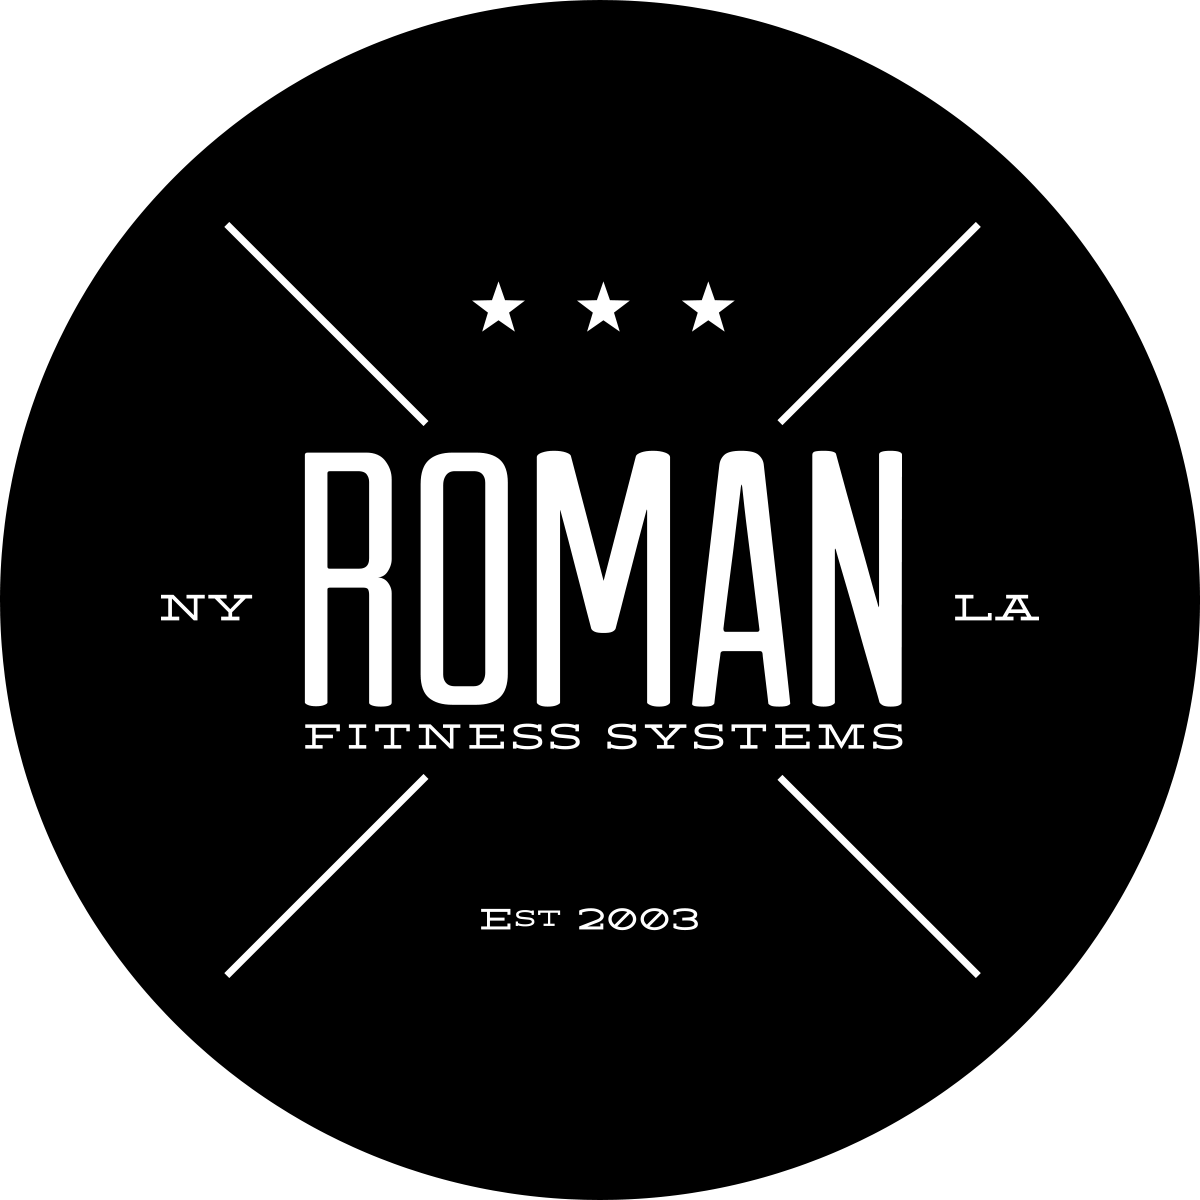 roman fitness systems .png